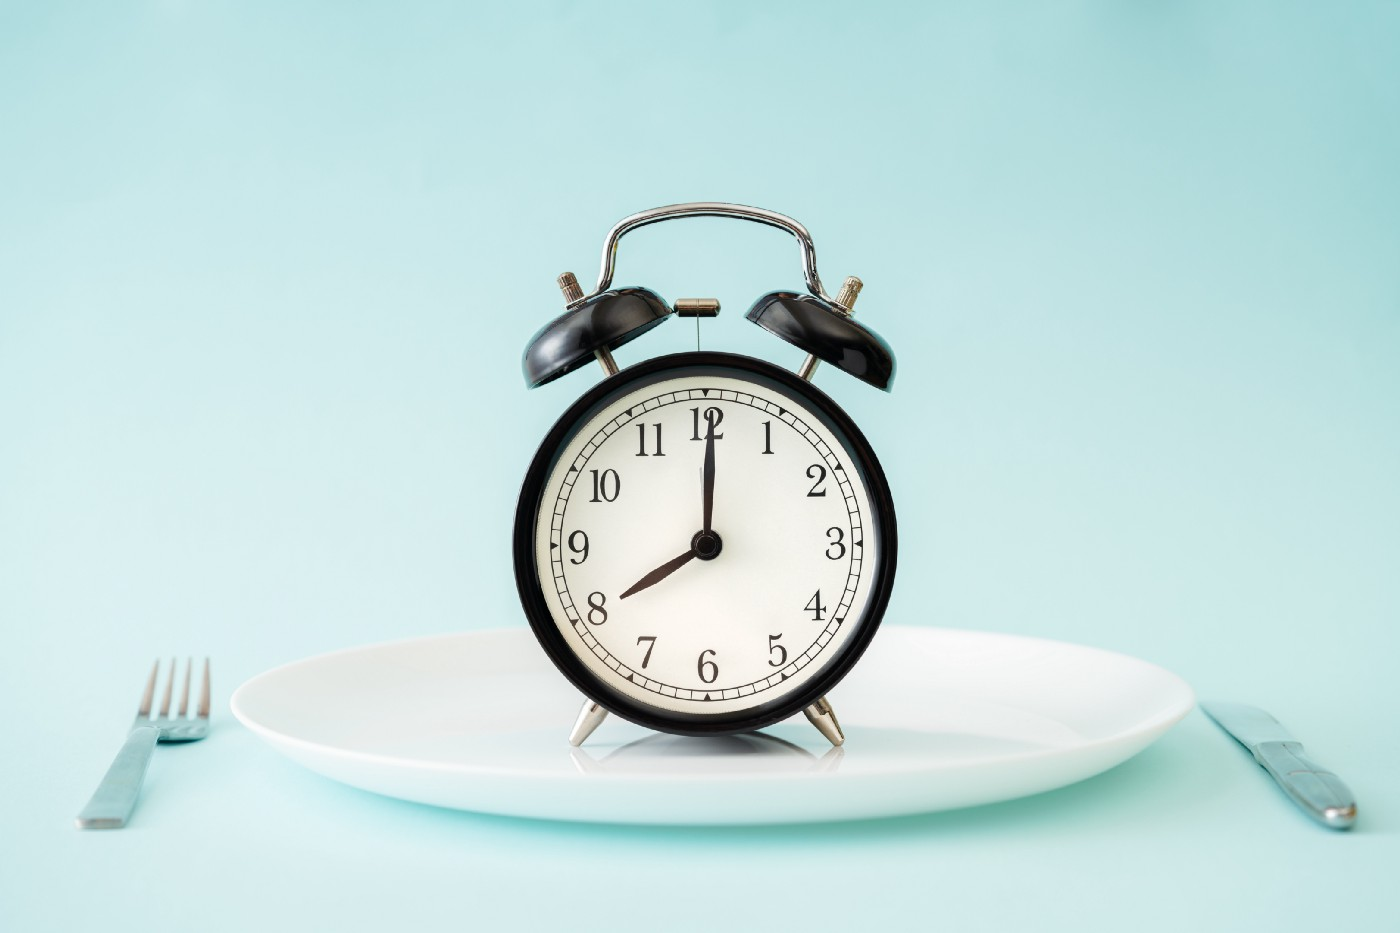 There's Nothing Magical About Intermittent Fasting